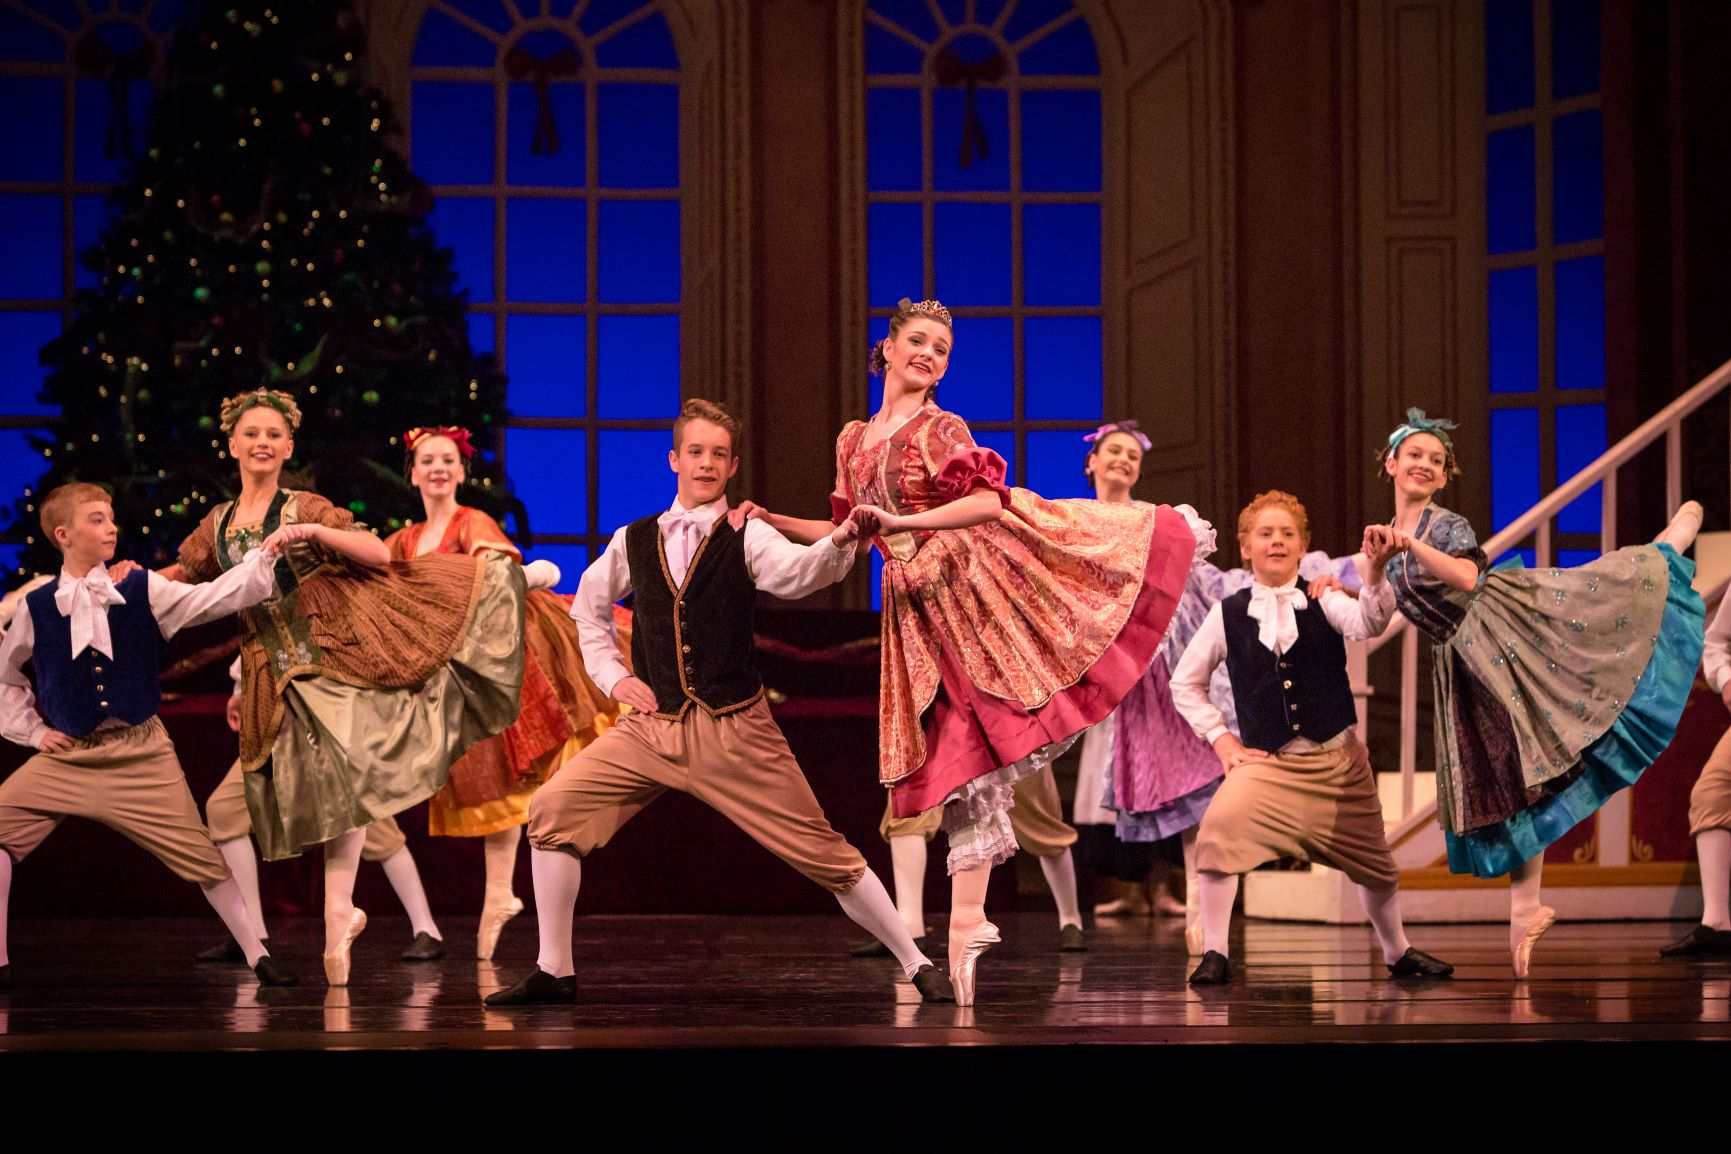 Nutcracker Ballet Taking the Stage Early this Year